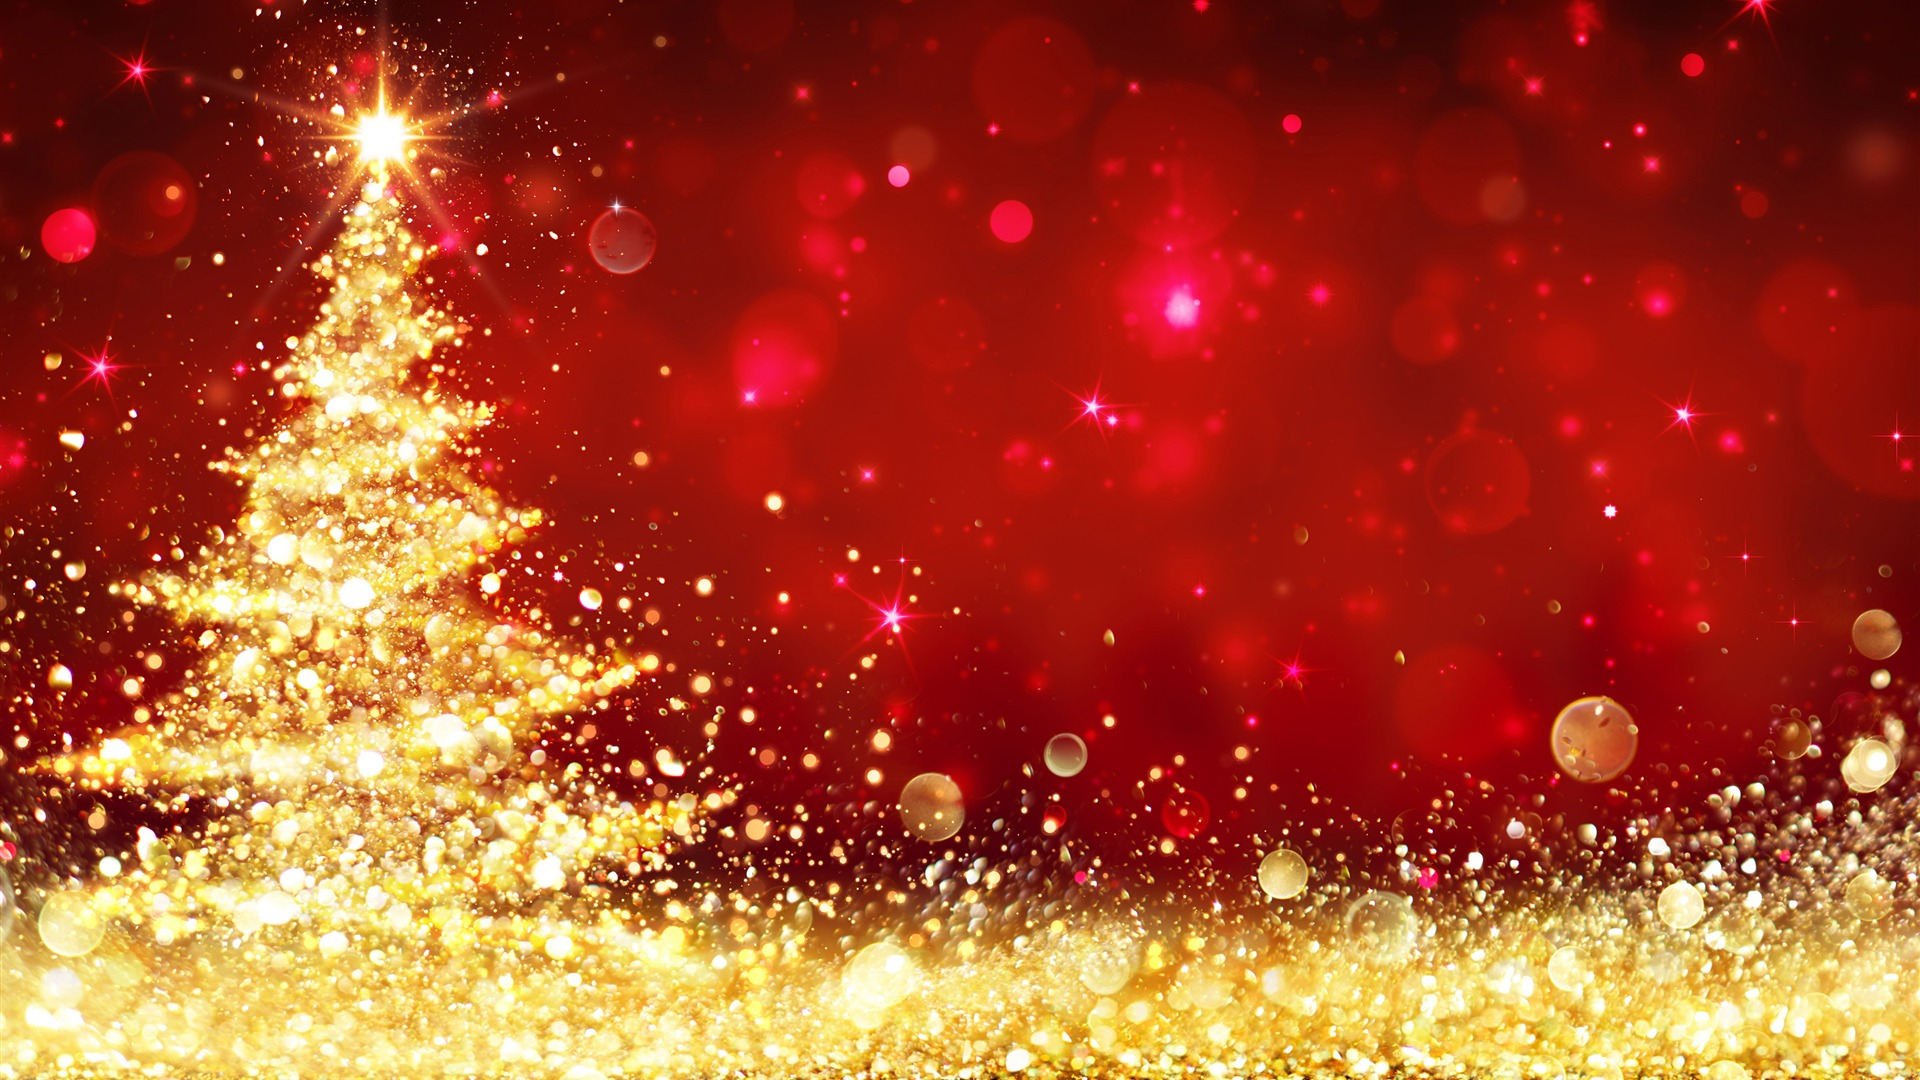 Gold Christmas Tree Red Background Desktop Wallpaper 1920x1080